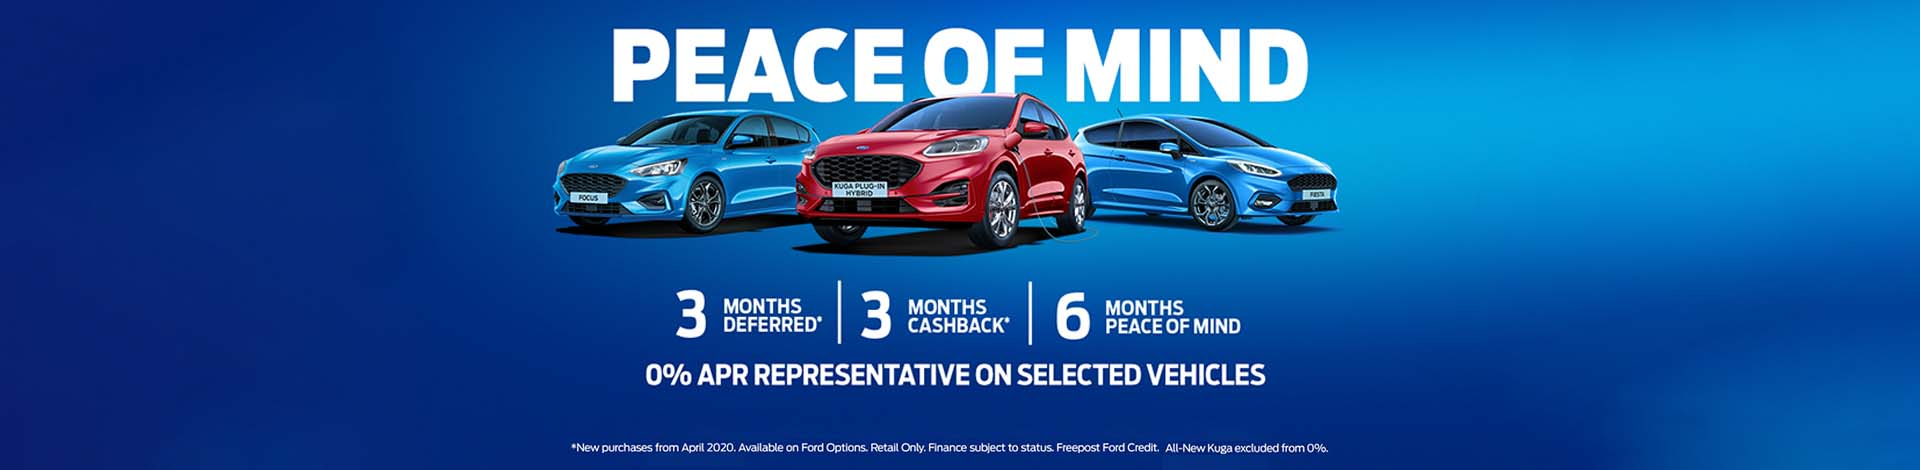 Ford Peace of Mind offer showing 6 Months Programme